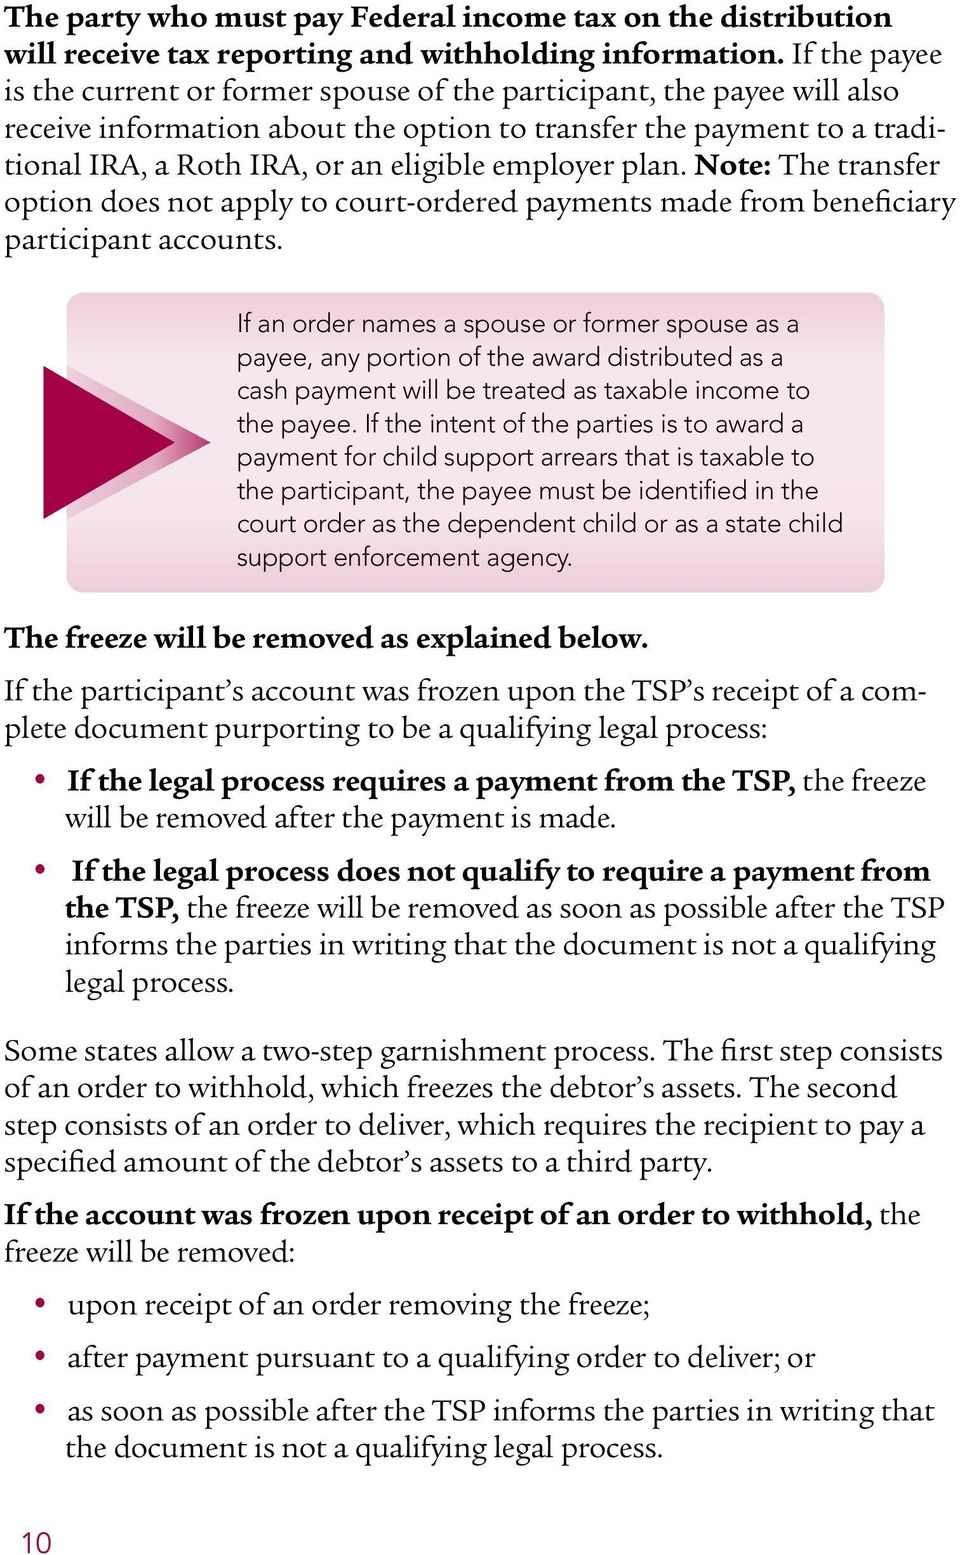 employer plan. Note: The transfer option does not apply to court-ordered payments made from beneficiary participant accounts.